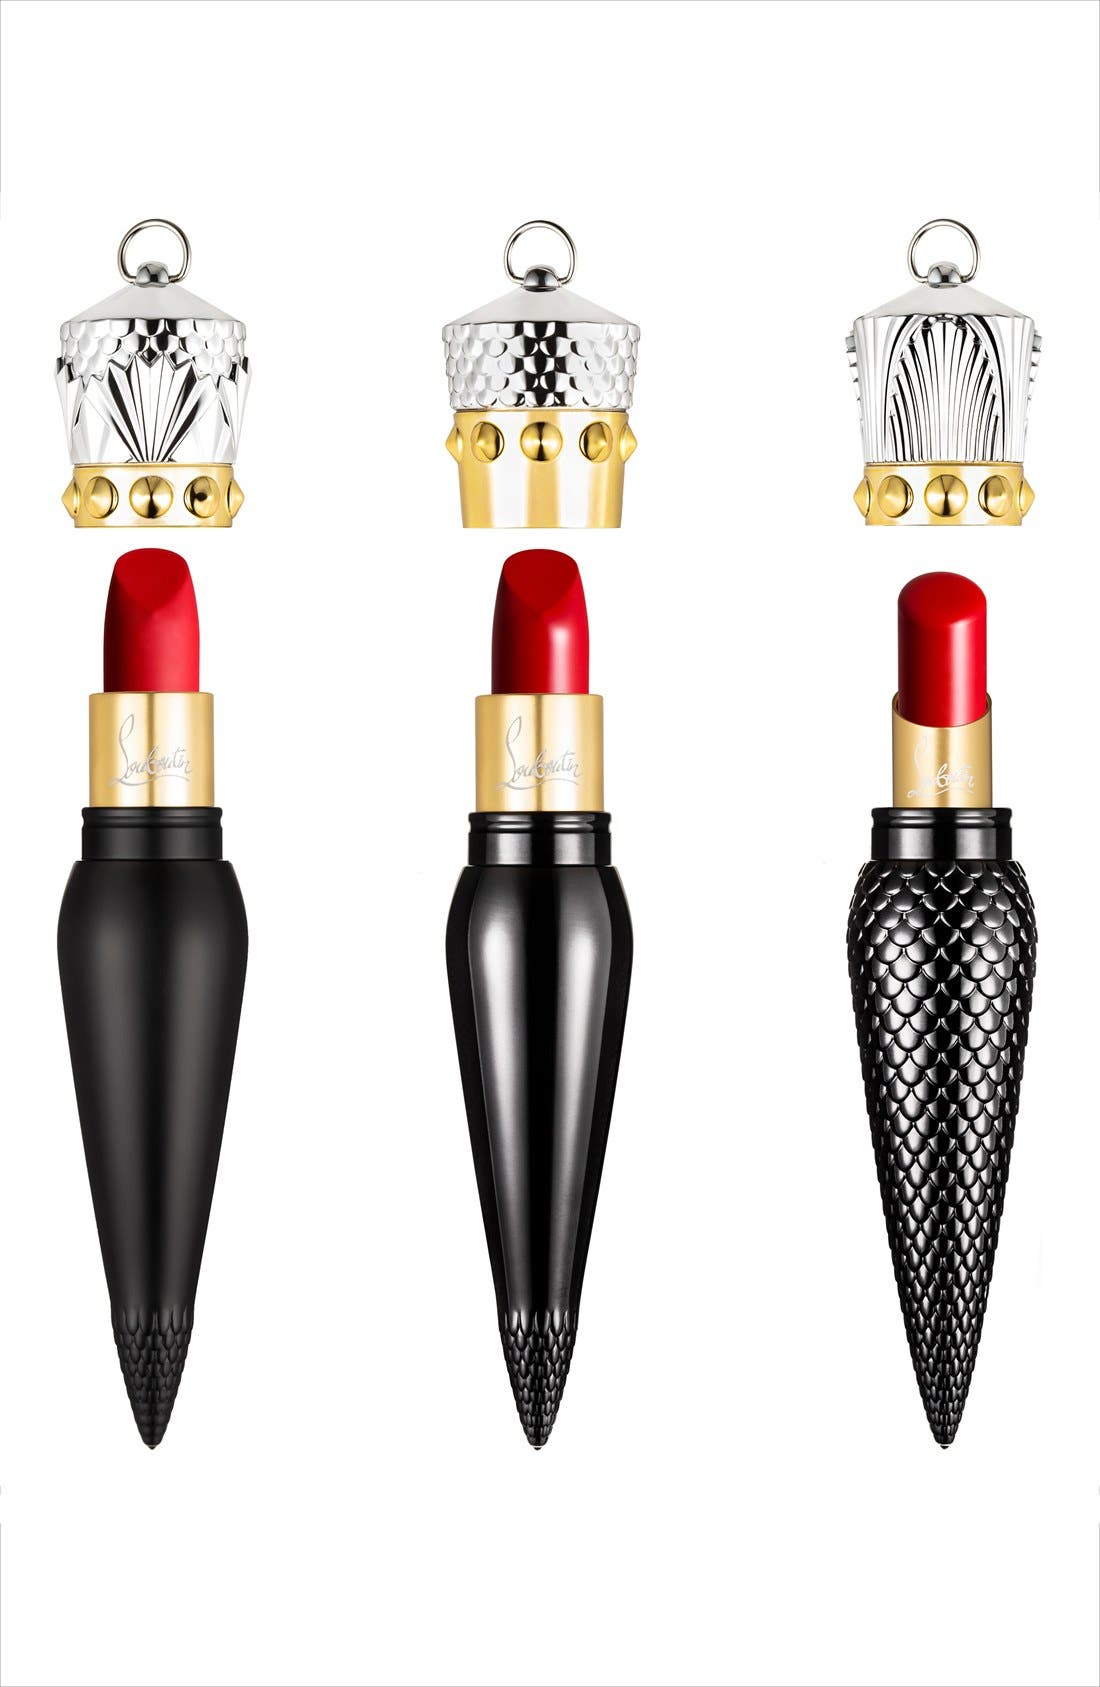 Christian Louboutin Rouge Louboutin Lip Colour Collection (Limited Edition)